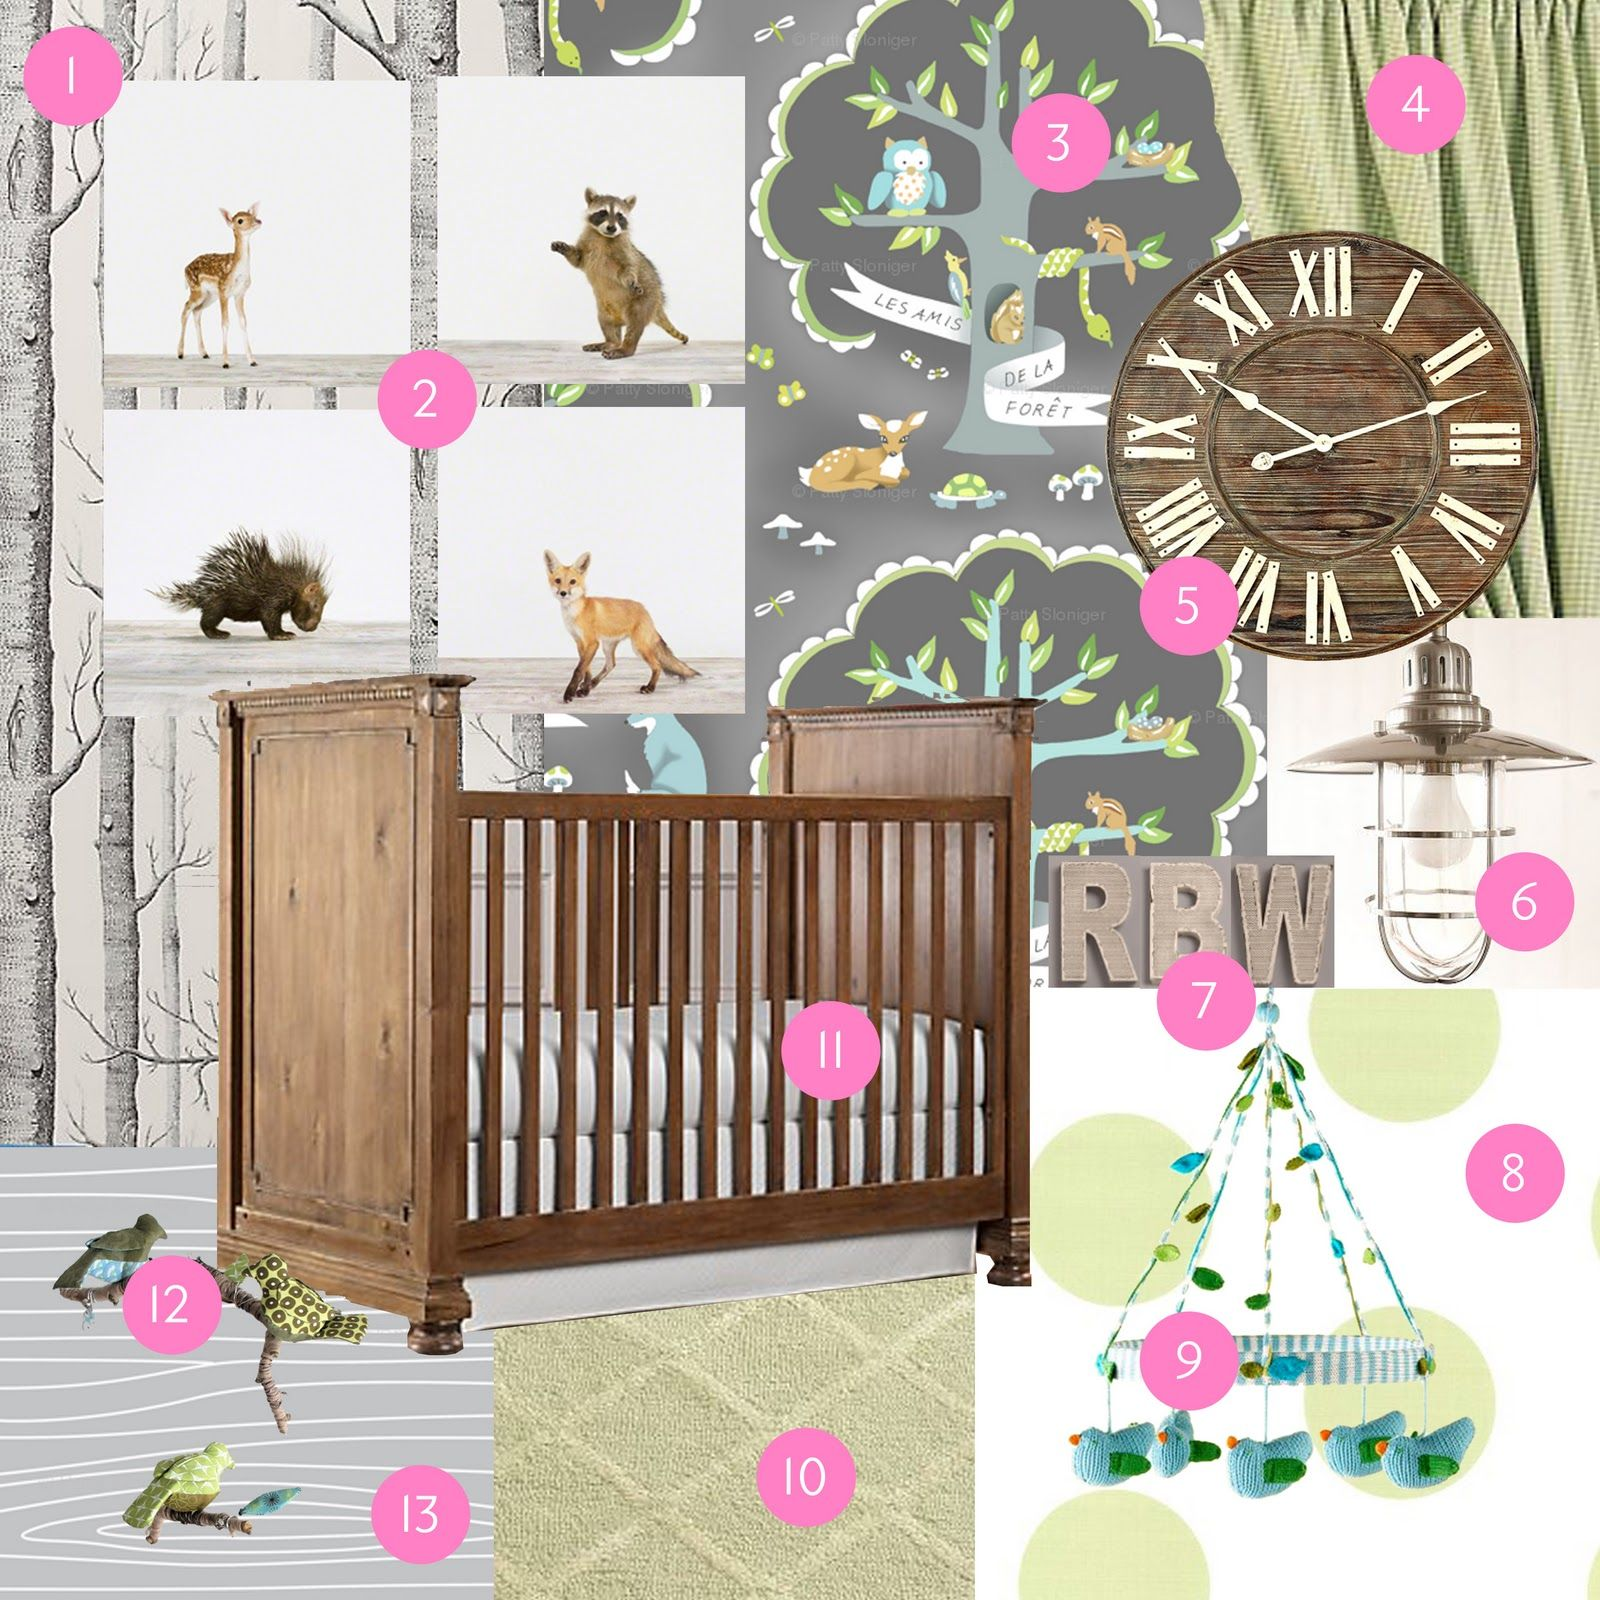 Woodland Forest Theme Nursery French Bedding Birch Trees Gold Painted Accessories Gr Green And Teal Gingham Driftwood Mirror